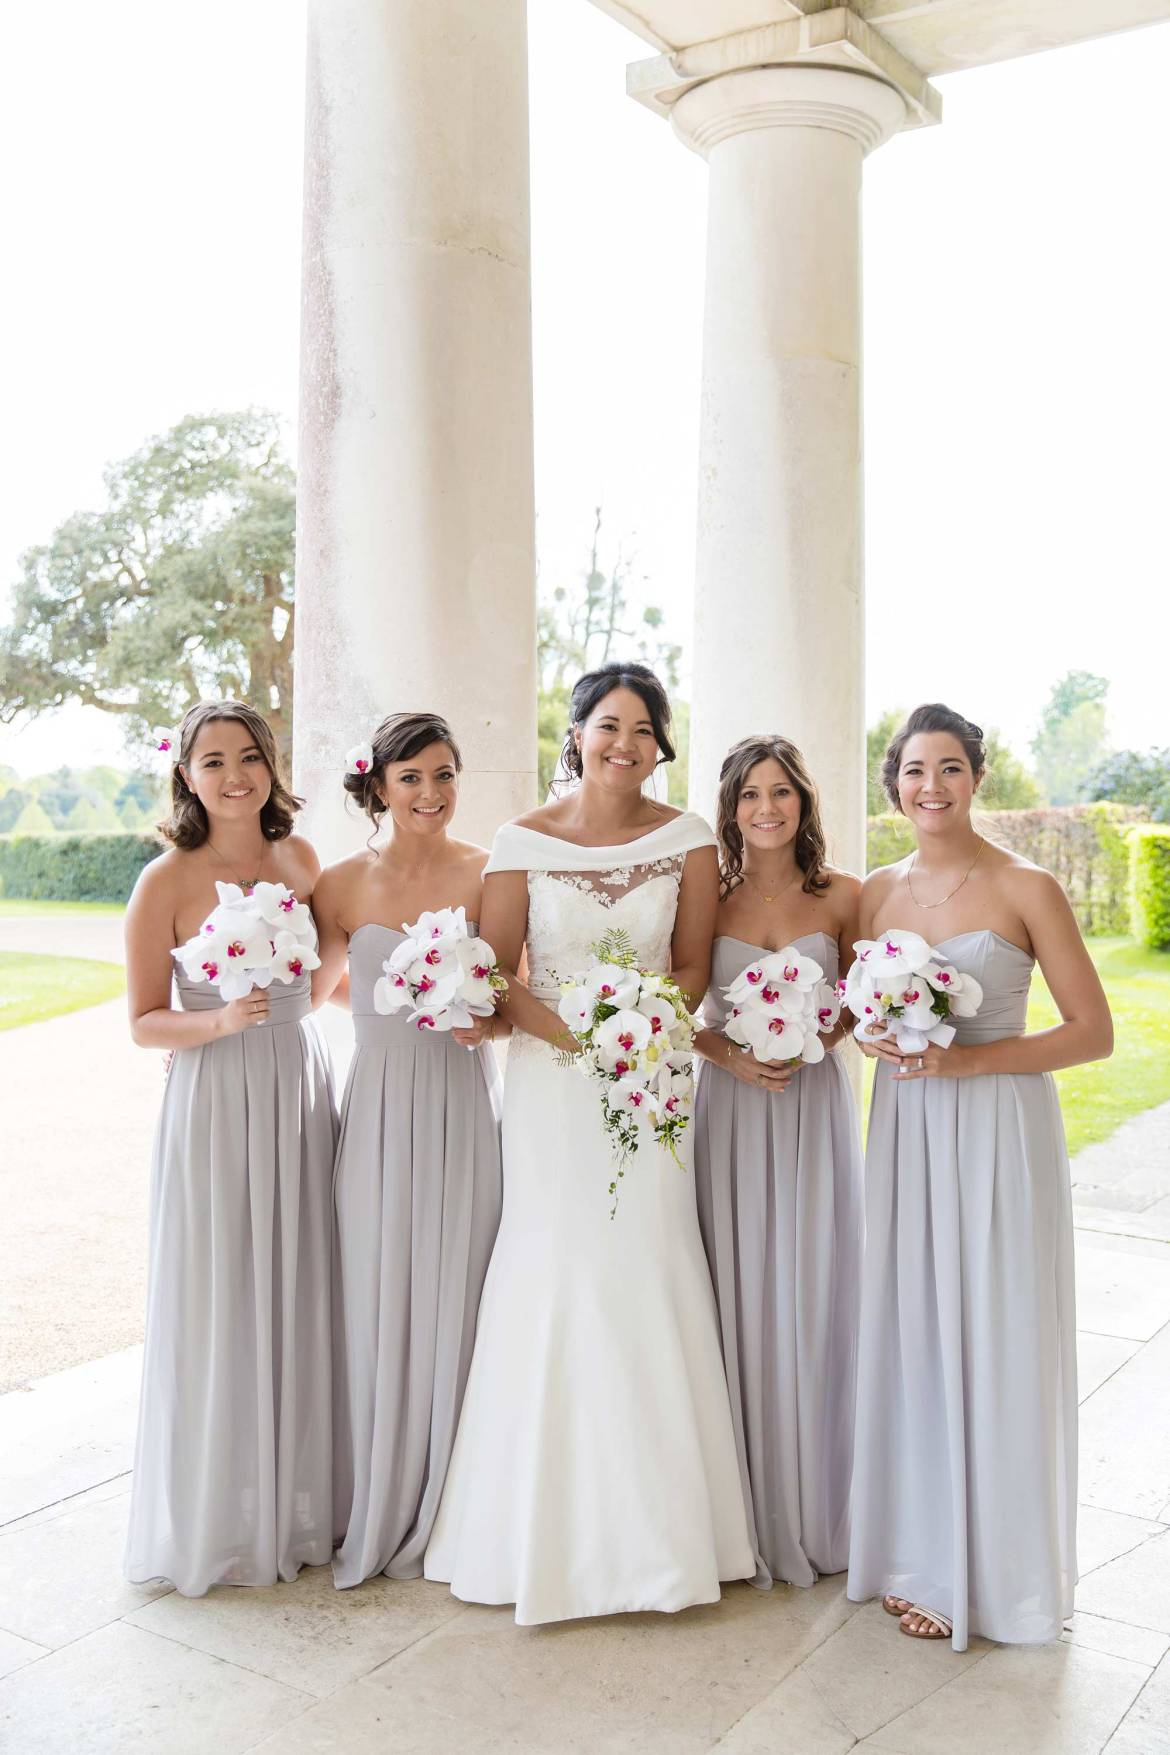 Formal group picture of Rachel and her Bridesmaids at Goodwood House prior to the ceremony